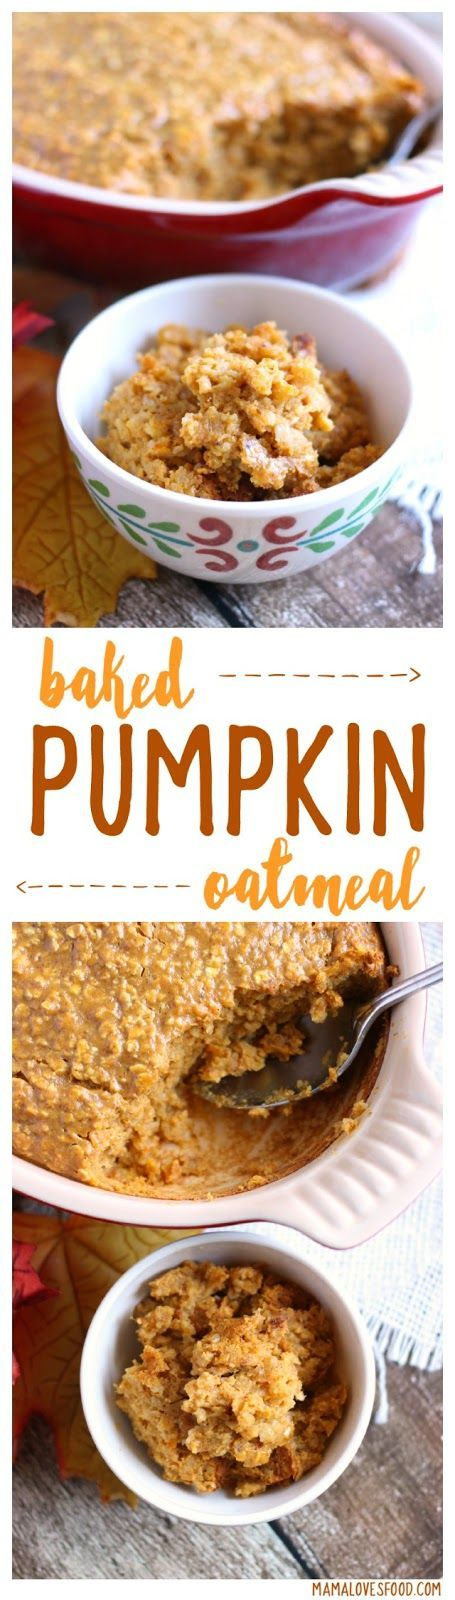 Baked Pumpkin Oatmeal - the perfect holiday breakfast! ad  #SamsClubMag